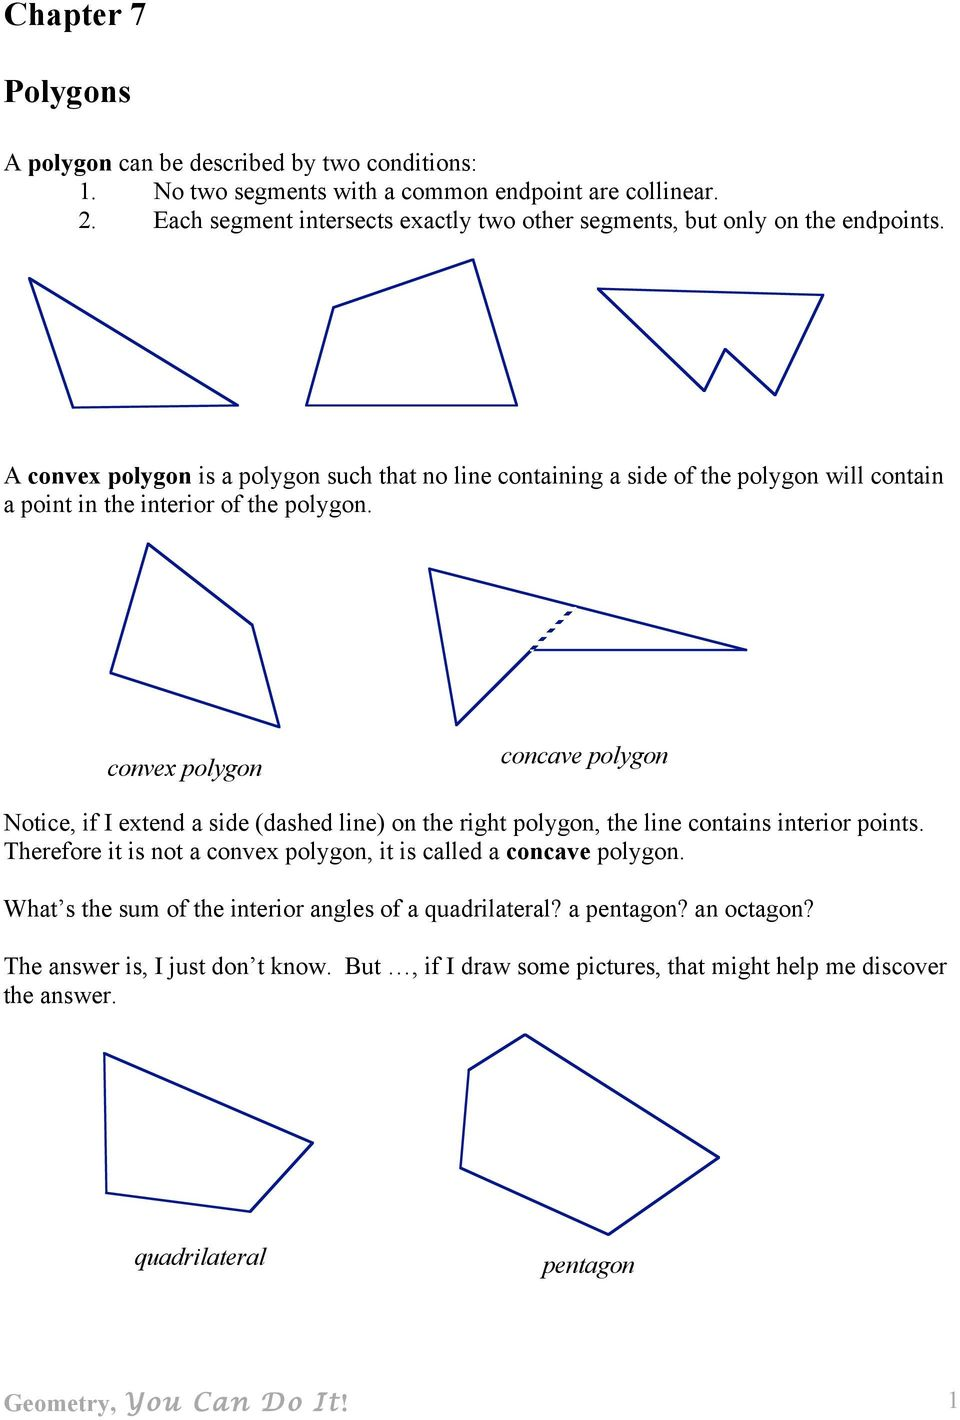 A convex polygon is a polygon such that no line containing a side of the polygon will contain a point in the interior of the polygon.